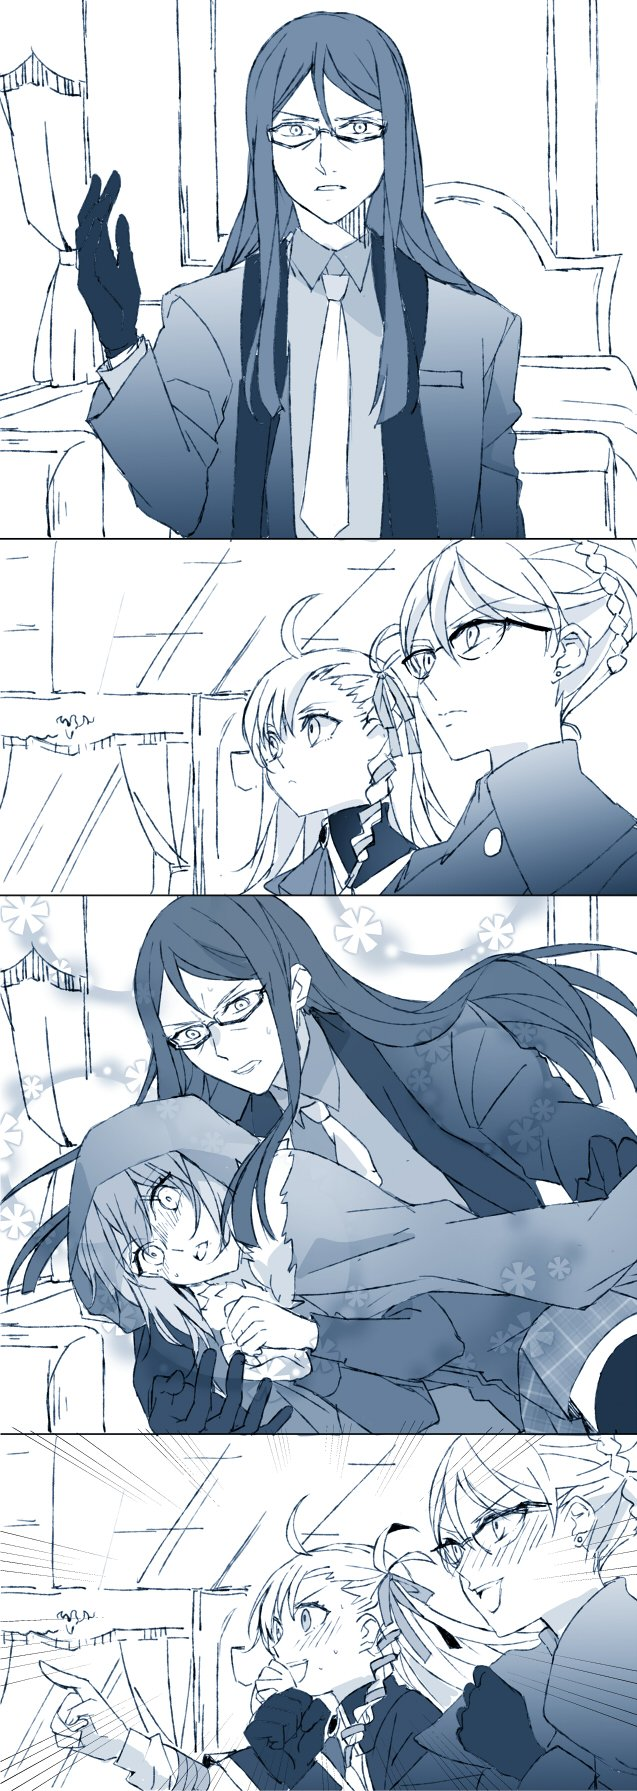 1boy 3girls ahoge ascot bangs bed blanket blush braid breast_pocket buttons cape ceiling clenched_hands cloak closed_mouth coat collared_shirt commentary constricted_pupils curtains earrings emphasis_lines eyebrows_visible_through_hair fate/grand_order fate_(series) formal french_braid frown fur_trim gaijin_4koma glasses gloves gray_(lord_el-melloi_ii) hair_between_eyes hair_bun hair_ribbon hands_together highres hood hood_up indoors jewelry long_hair long_sleeves looking_at_viewer lord_el-melloi_ii lord_el-melloi_ii_case_files multiple_girls necktie olga_marie_animusphere open_mouth parody parted_lips picture_frame pocket pointing ribbon round_teeth semi-rimless_eyewear shirt side_braid skirt smile suit sweat sweating_profusely teeth trisha_fellows wall waver_velvet window younger